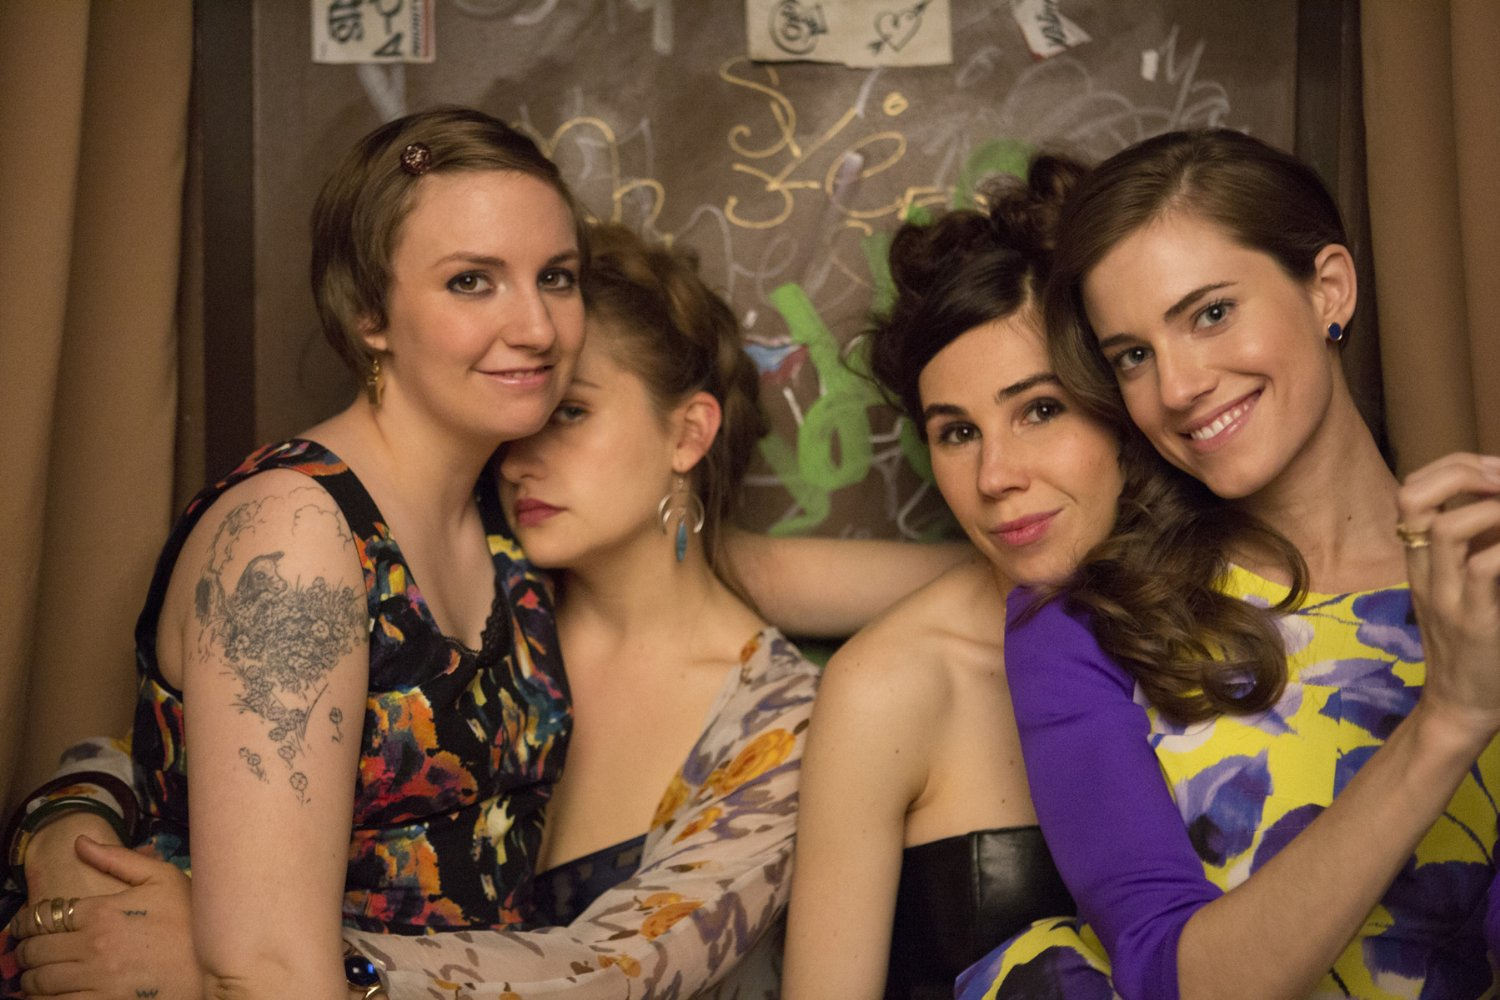 When is Girls season 6 on, how can I watch it and what is it about?